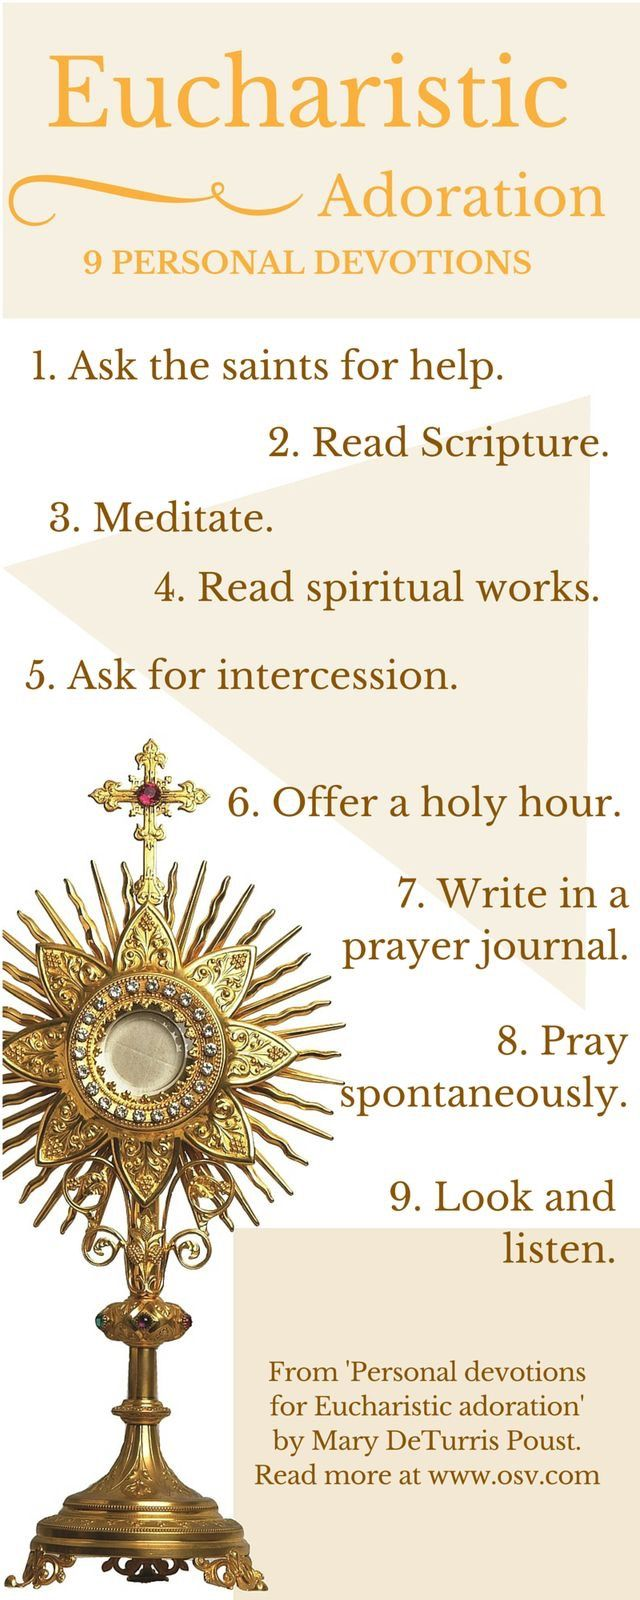 #Eucharistic #Adoration #Pray #Faith